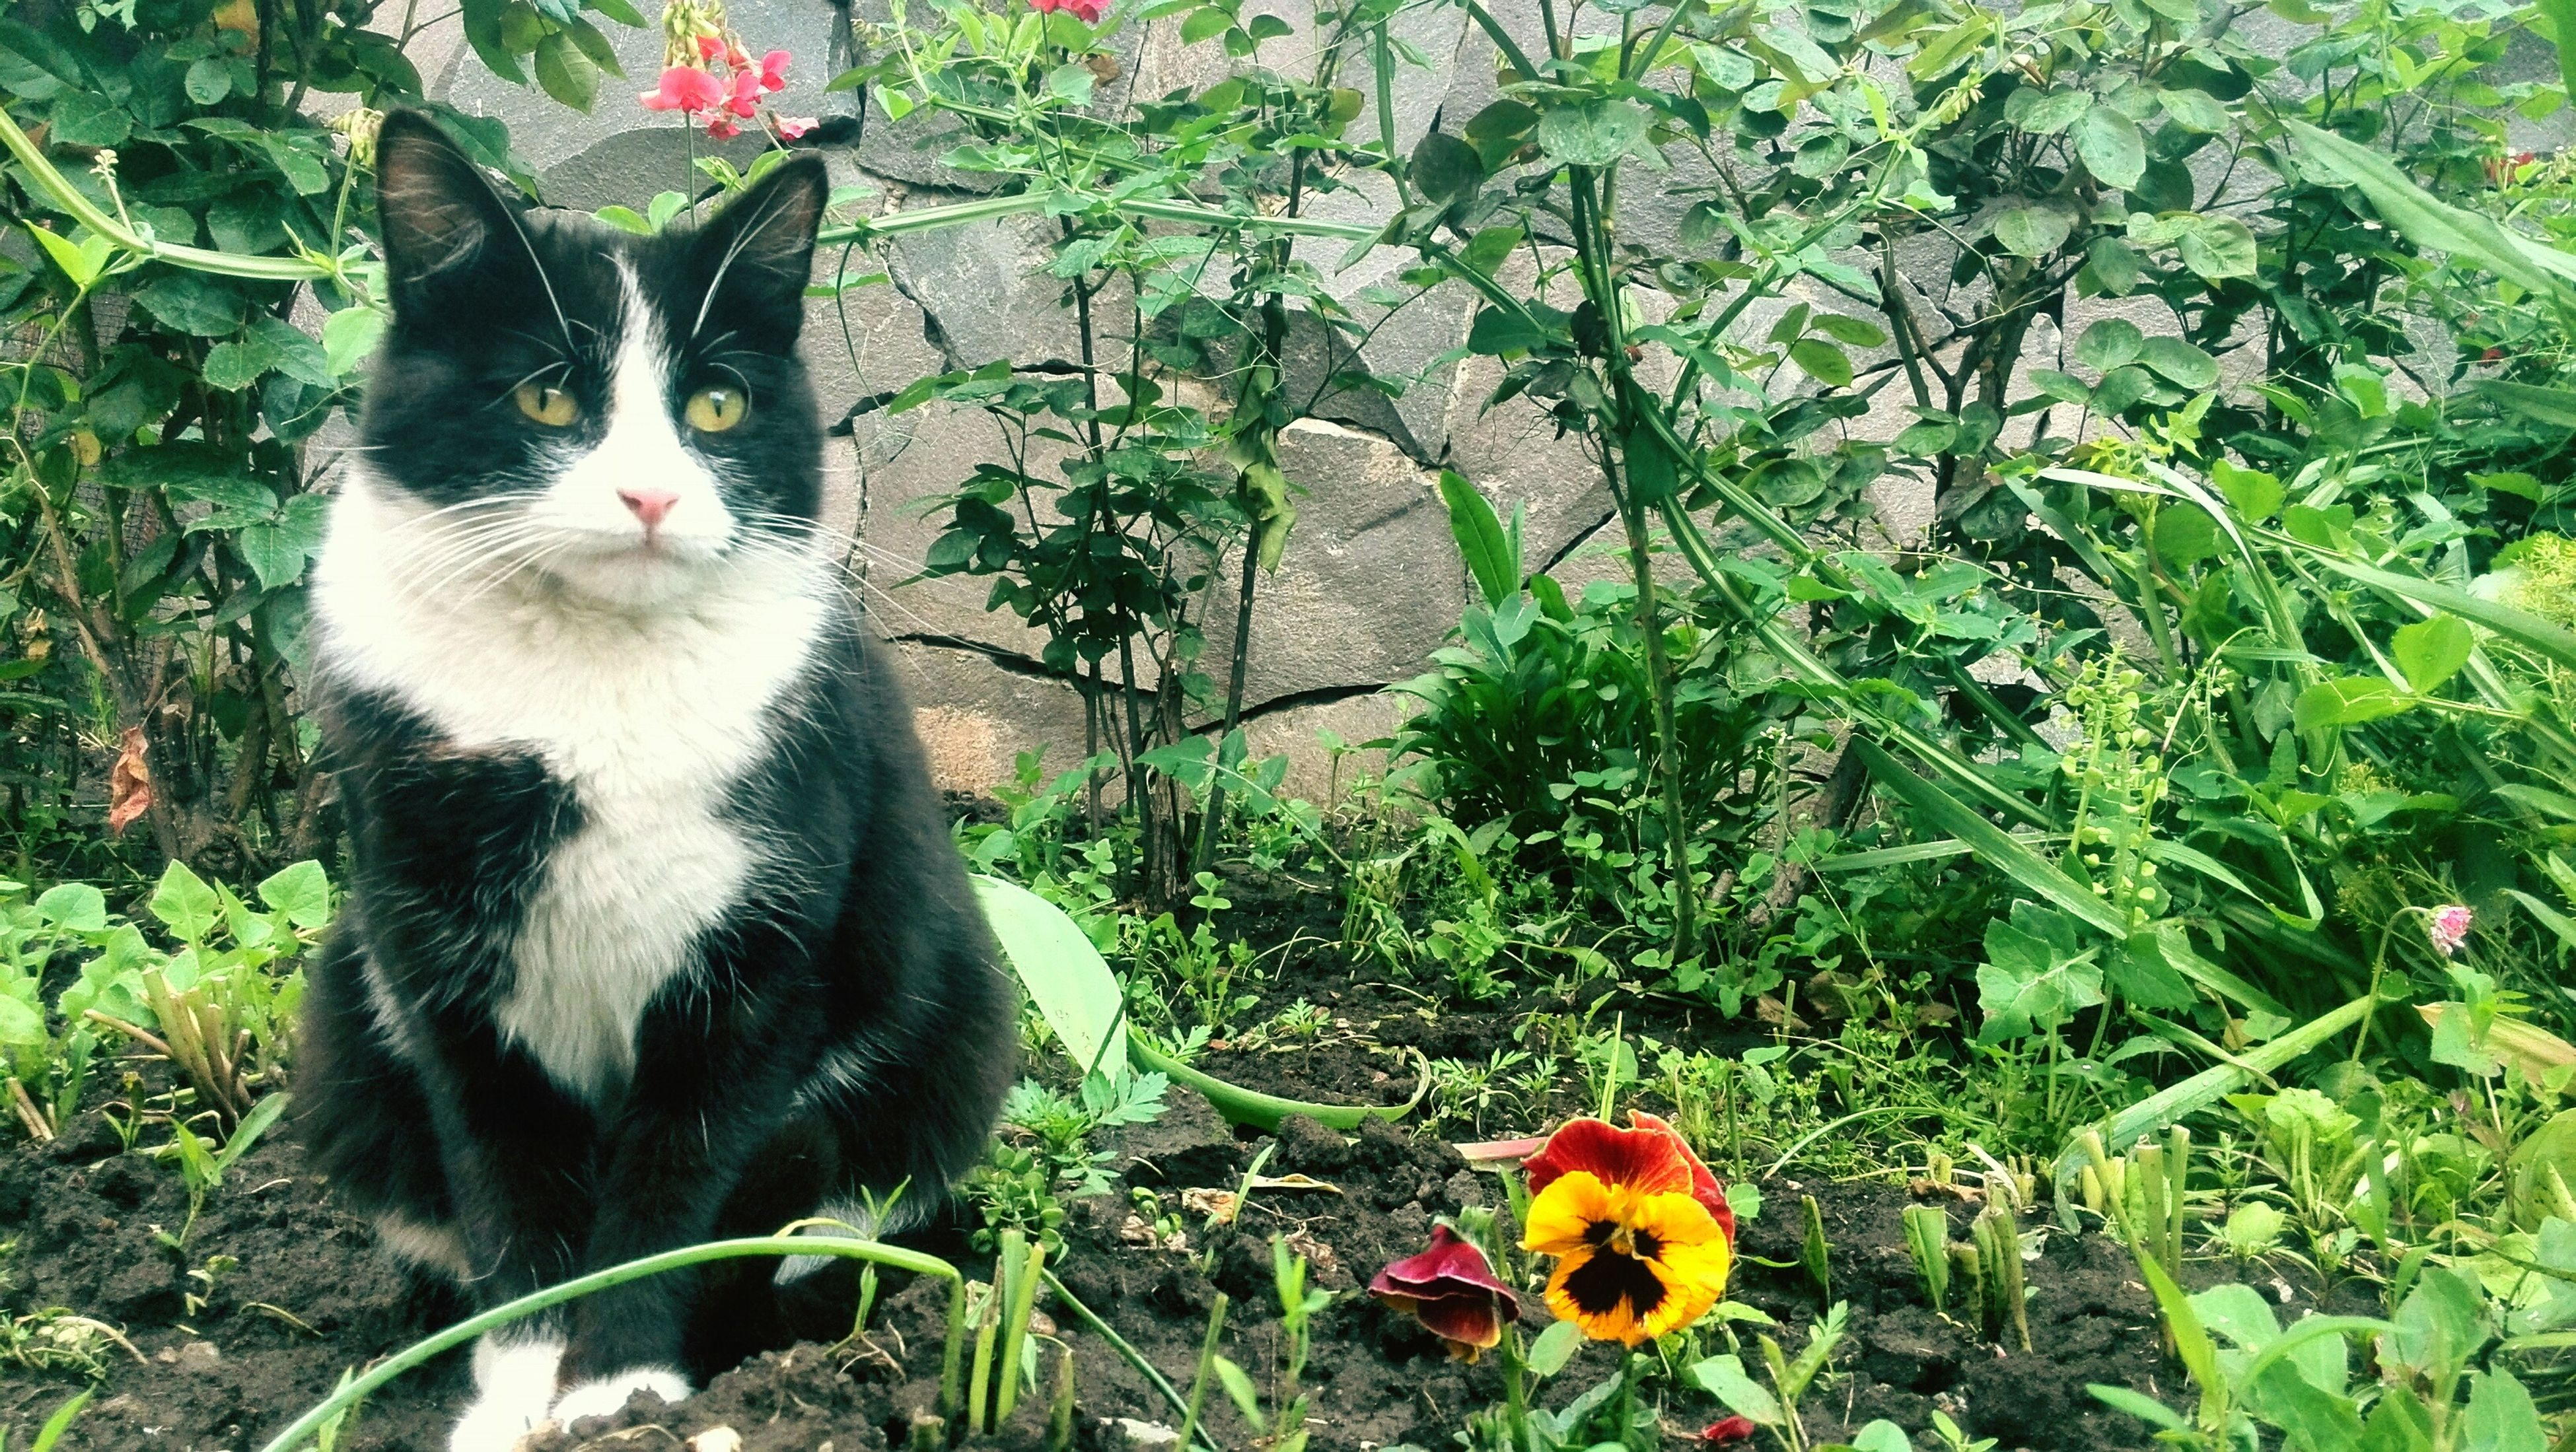 animal themes, one animal, domestic animals, domestic cat, pets, cat, mammal, feline, flower, plant, growth, whisker, looking at camera, grass, sitting, portrait, front or back yard, nature, no people, outdoors